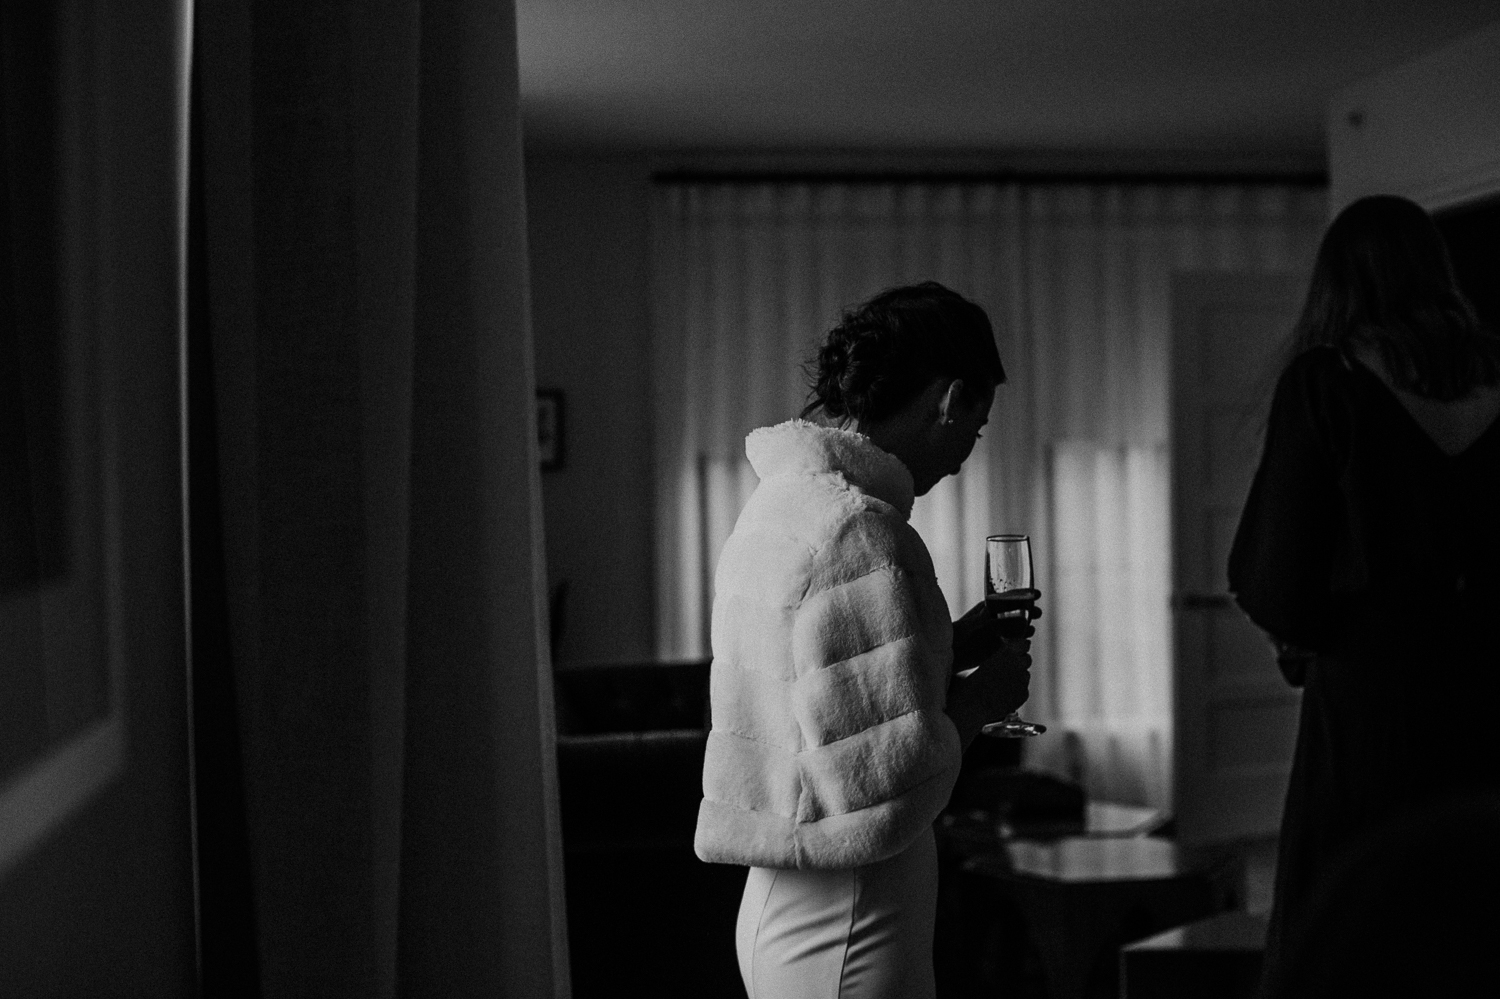 washington-dc-the-line-hotel-bride-getting-ready-photographs 31.jpg